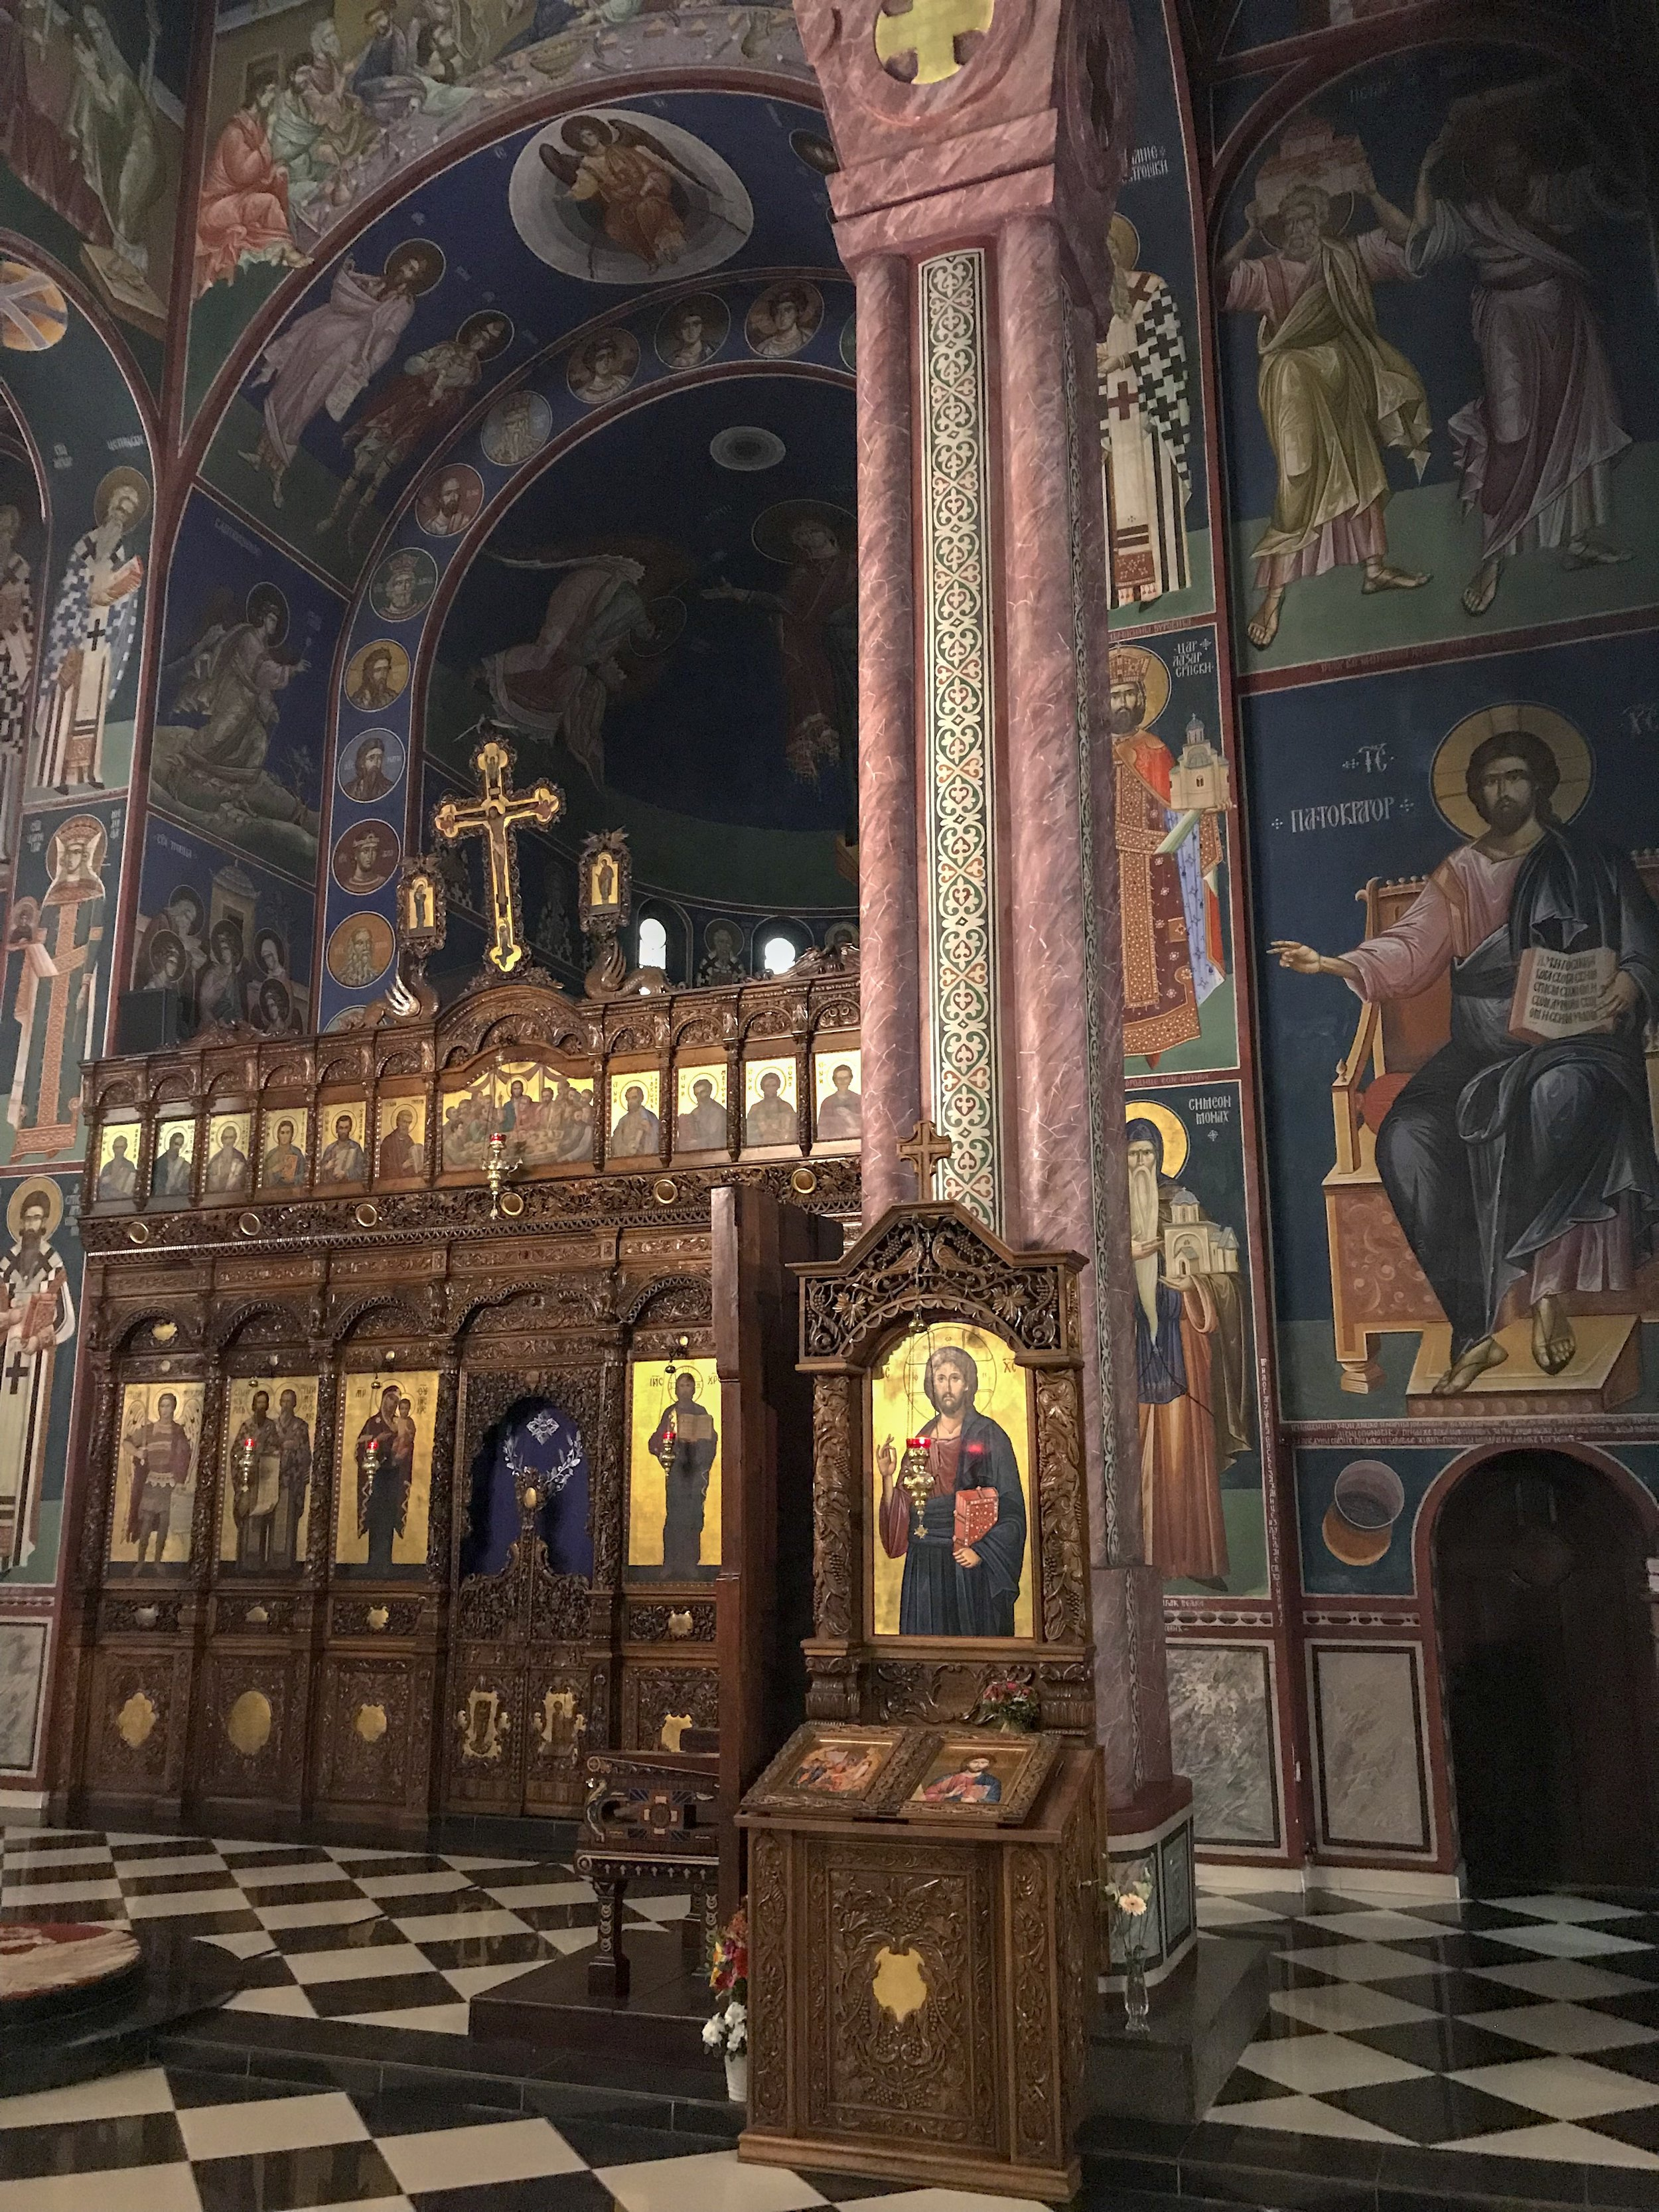 Iconostasis of Sts. Cyril and Methodius Orthodox Church